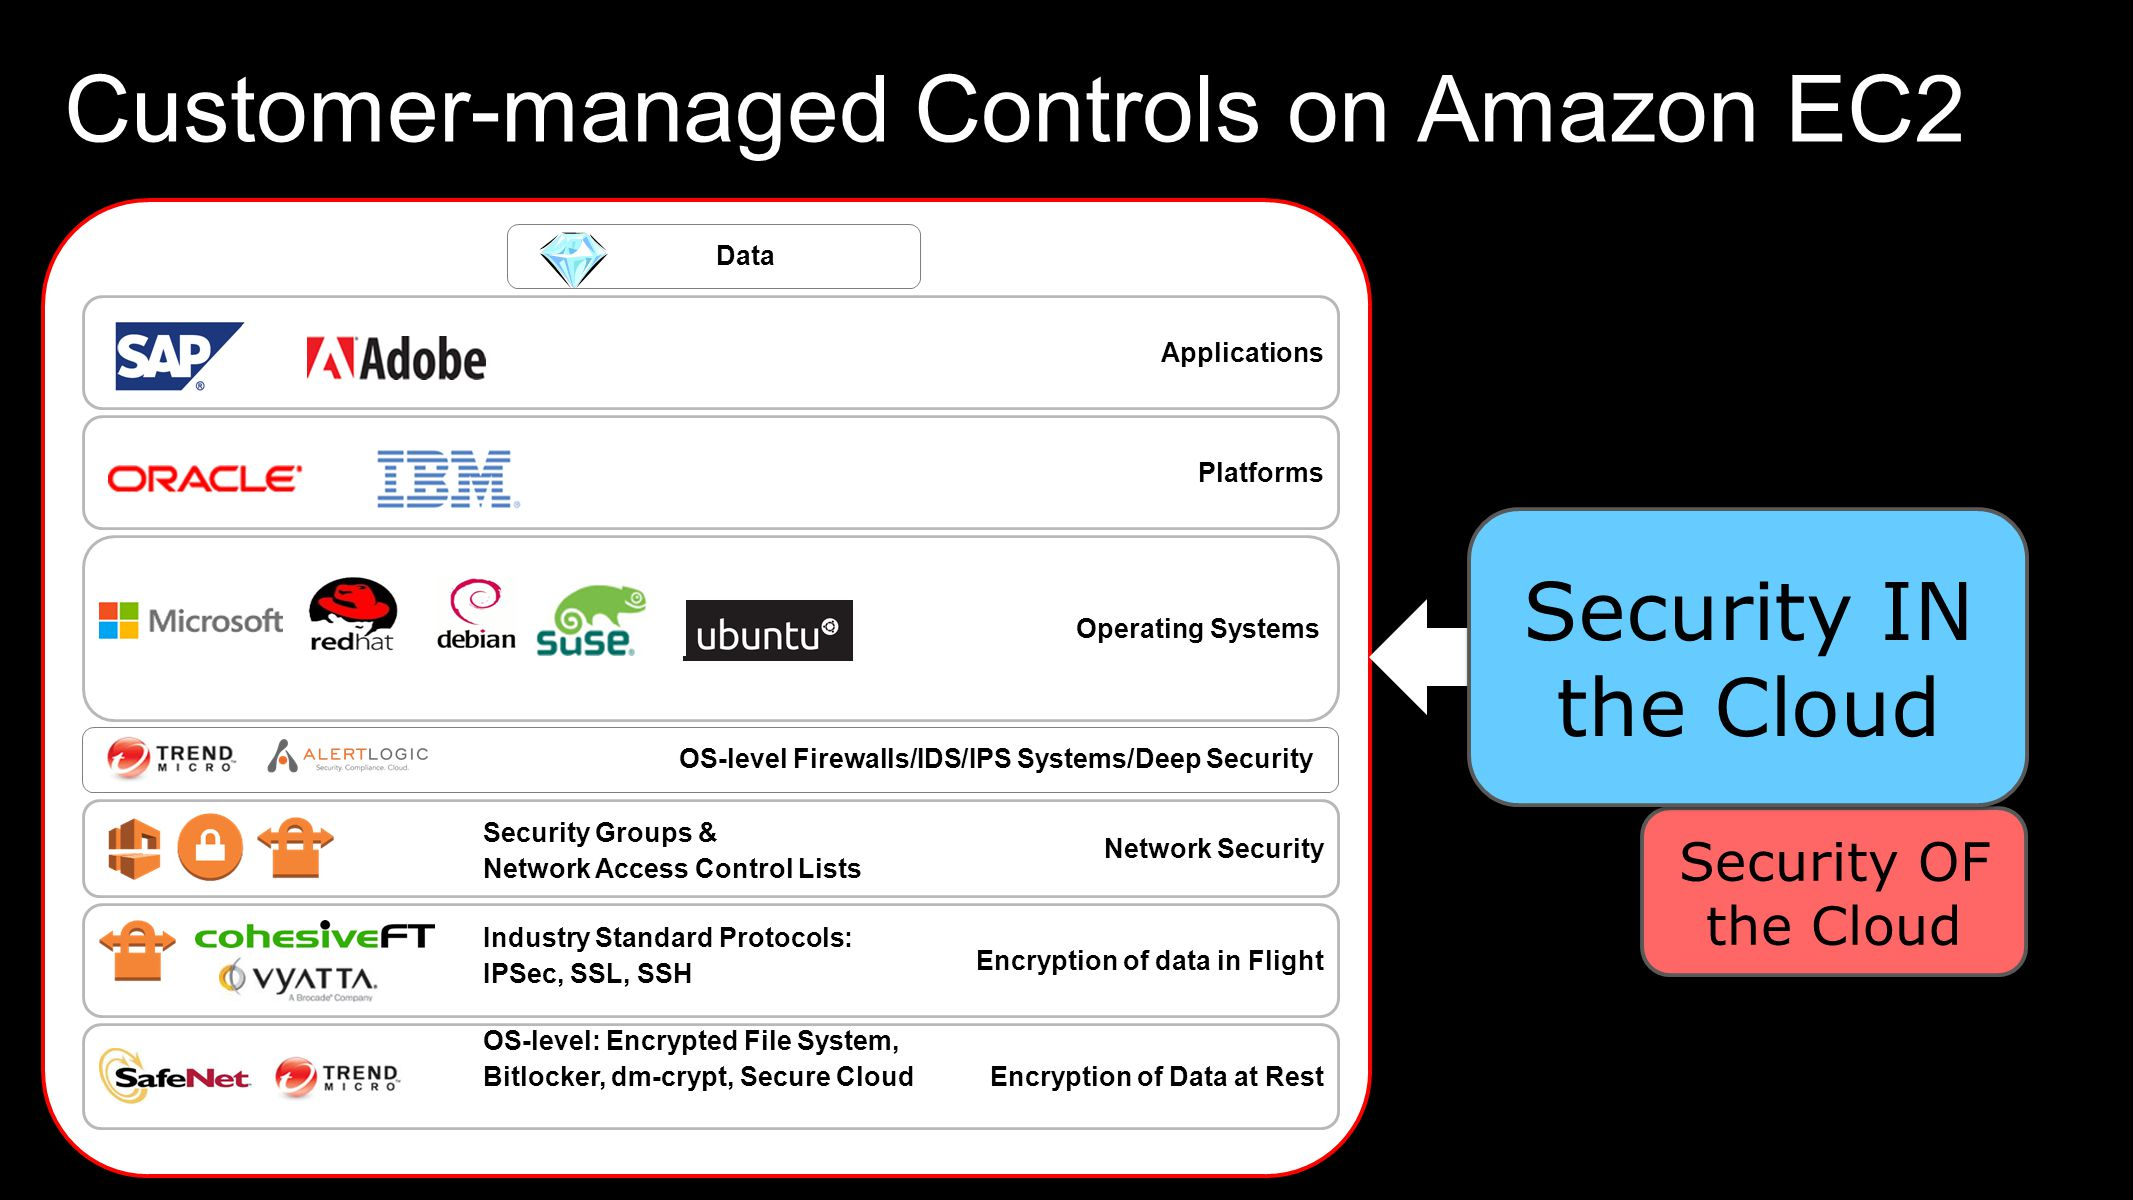 Customer-managed Controls on Amazon EC2